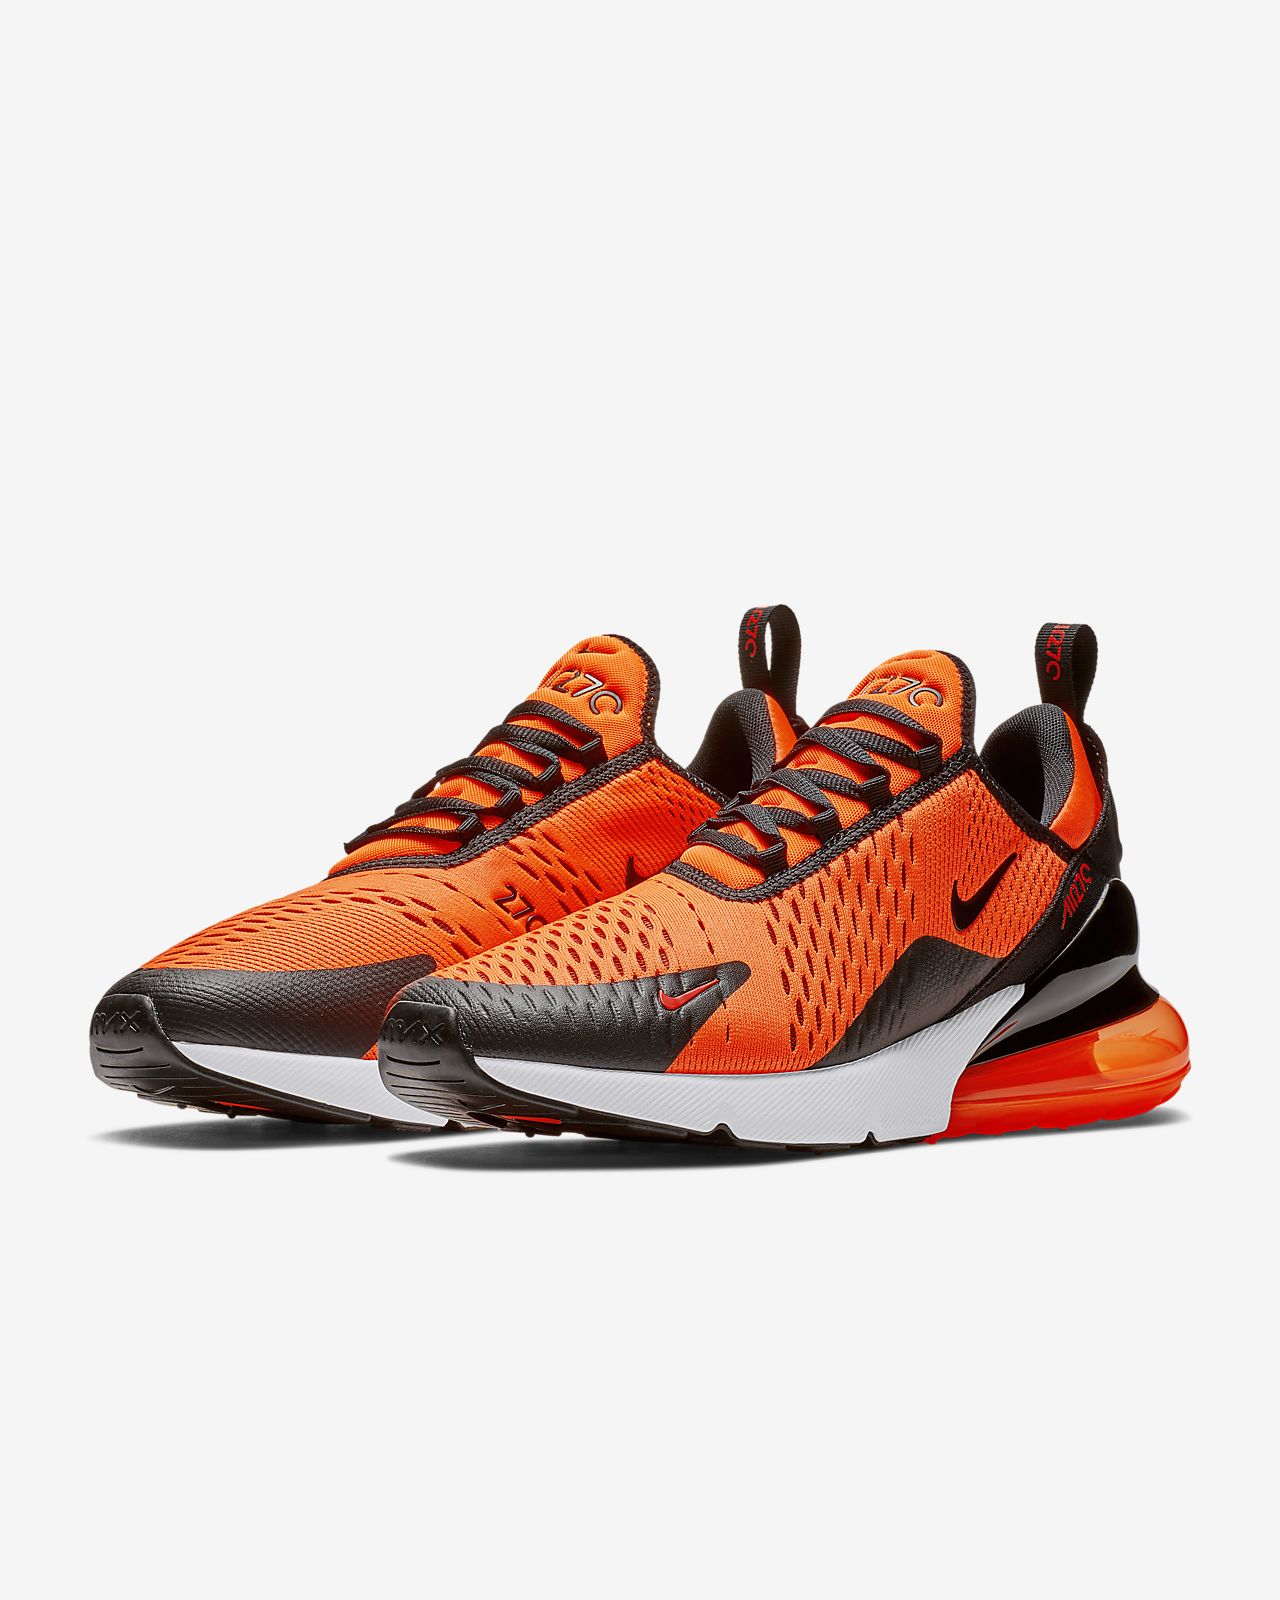 31c8593440 Nike Air Max 270 Men's Shoe. Nike.com MA